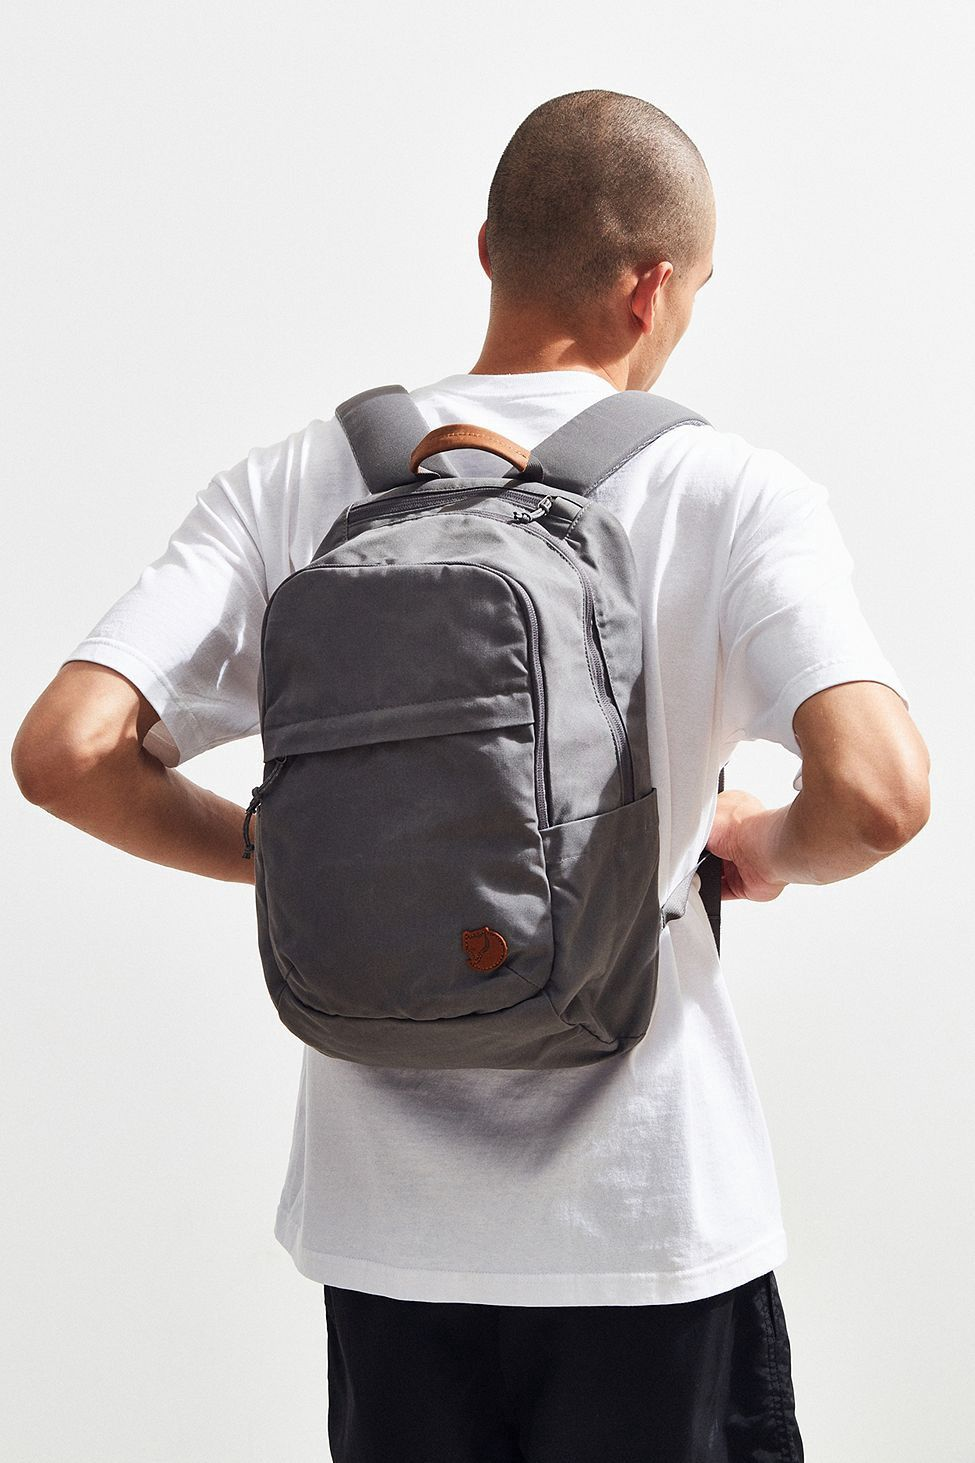 Urban Outfitters Fjallraven Raven 20 Backpack - Bright Yellow One